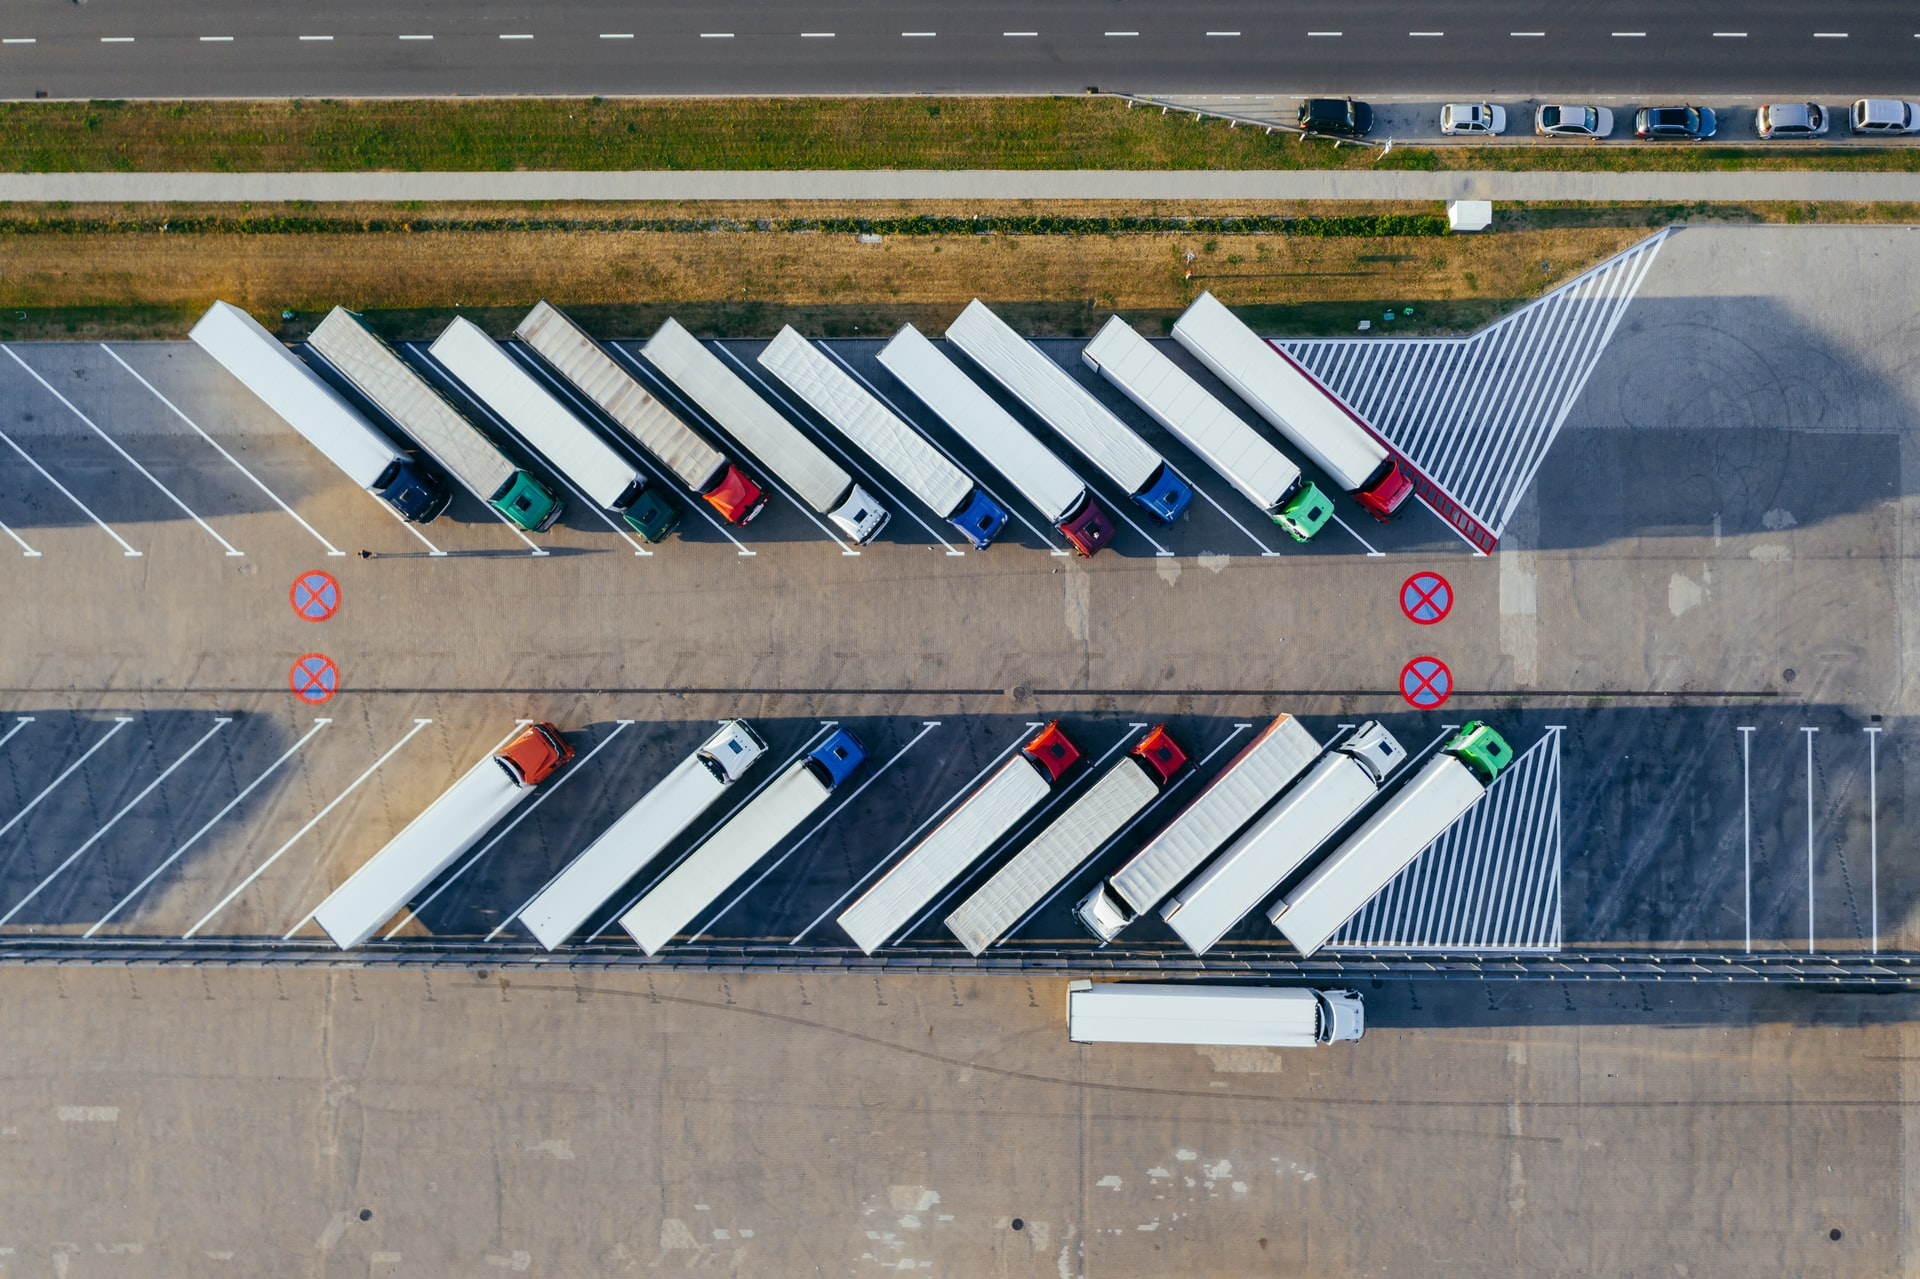 An arial shot of two rows of HGVs parked diagonally and pointing to the right of the frame.